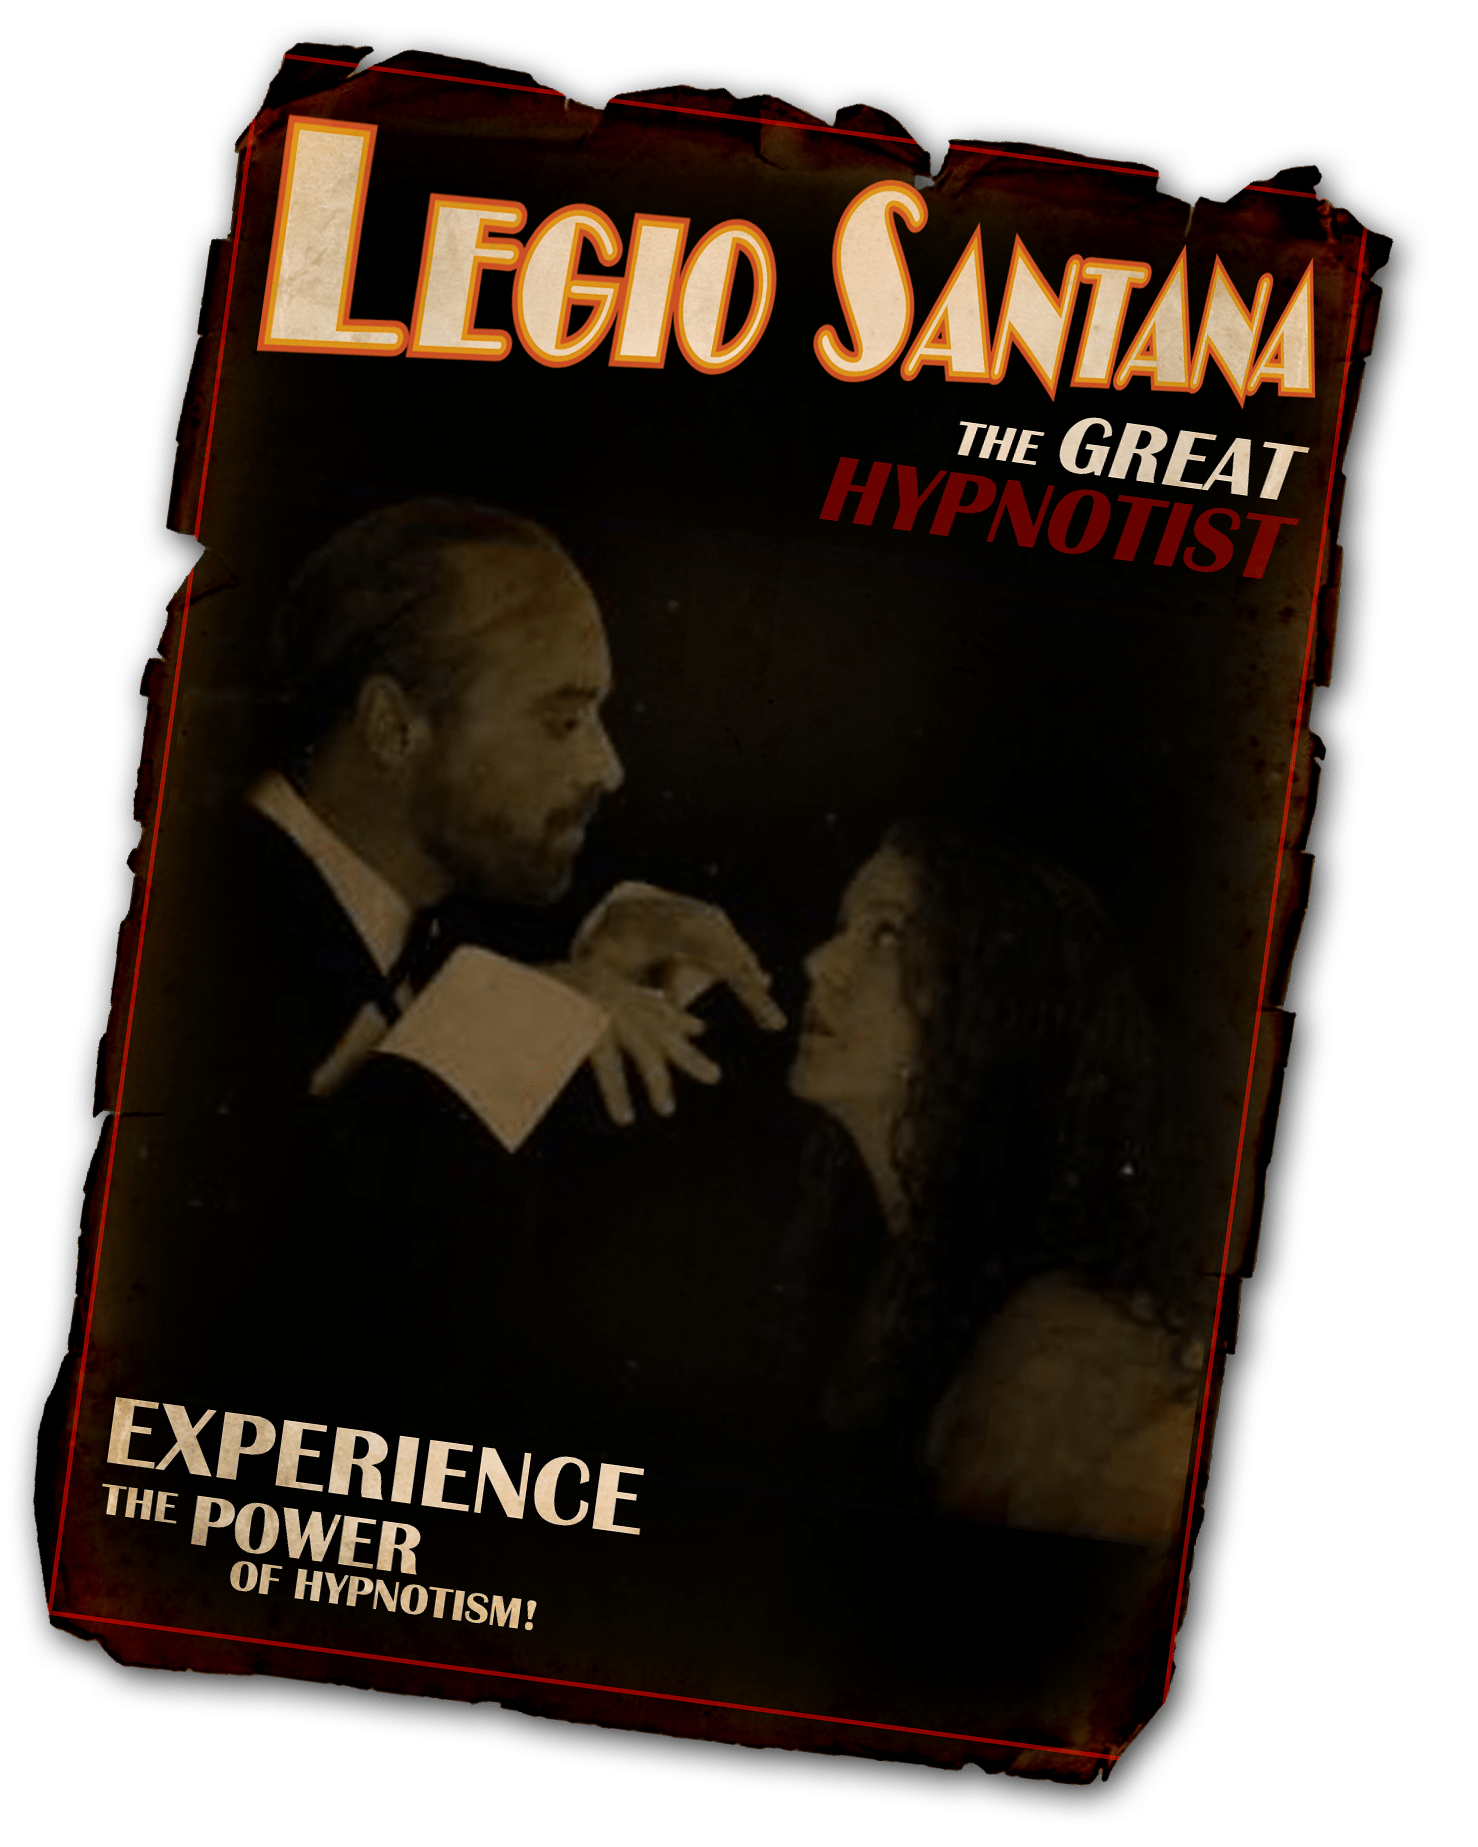 Legio Santana - The great hypnotist! - Poster